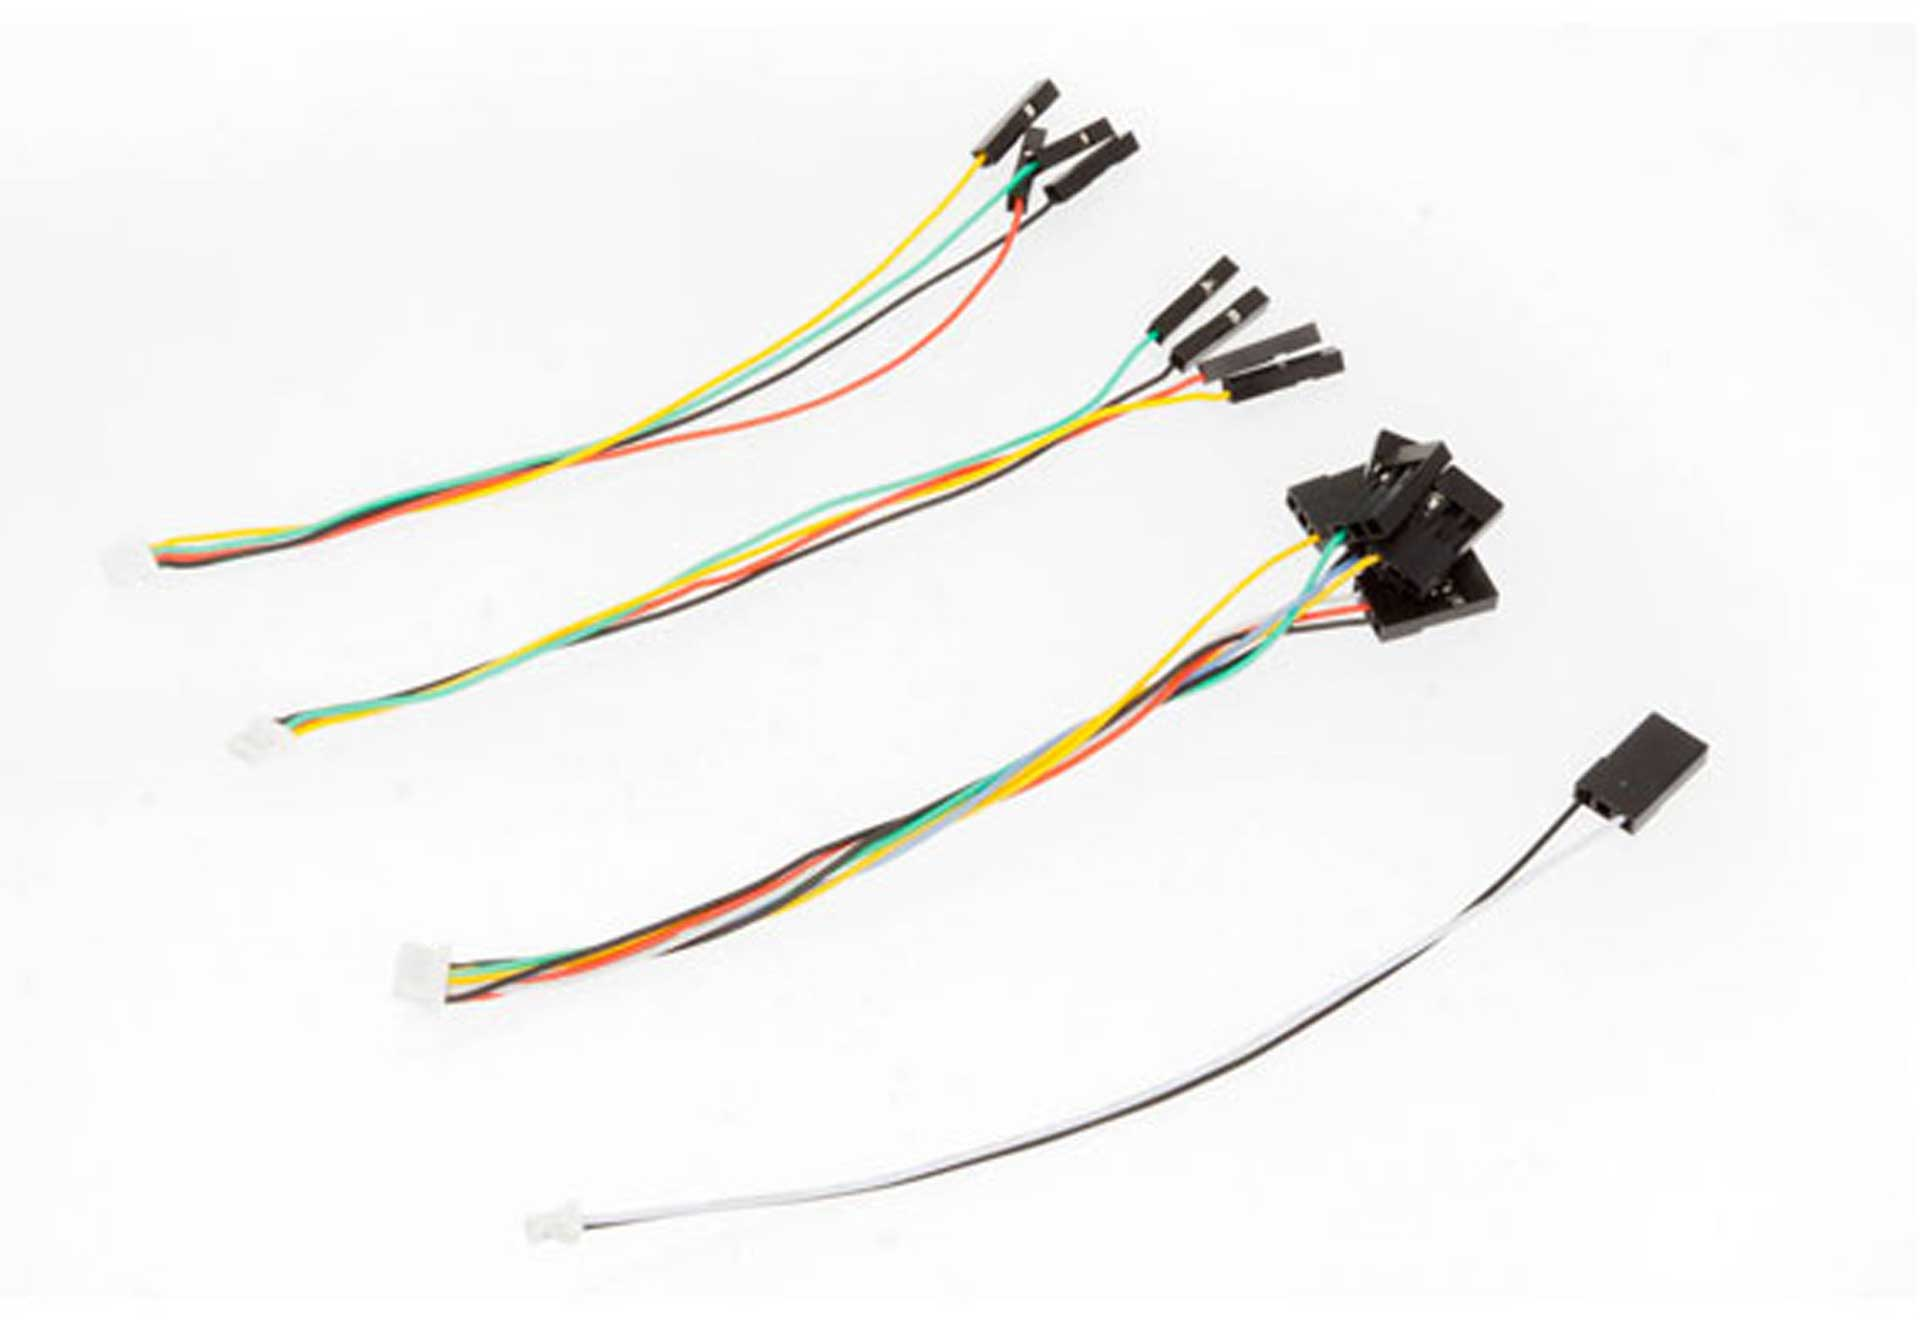 ROCKAMP REPLACEMENT CABLE SET FOR CC3D